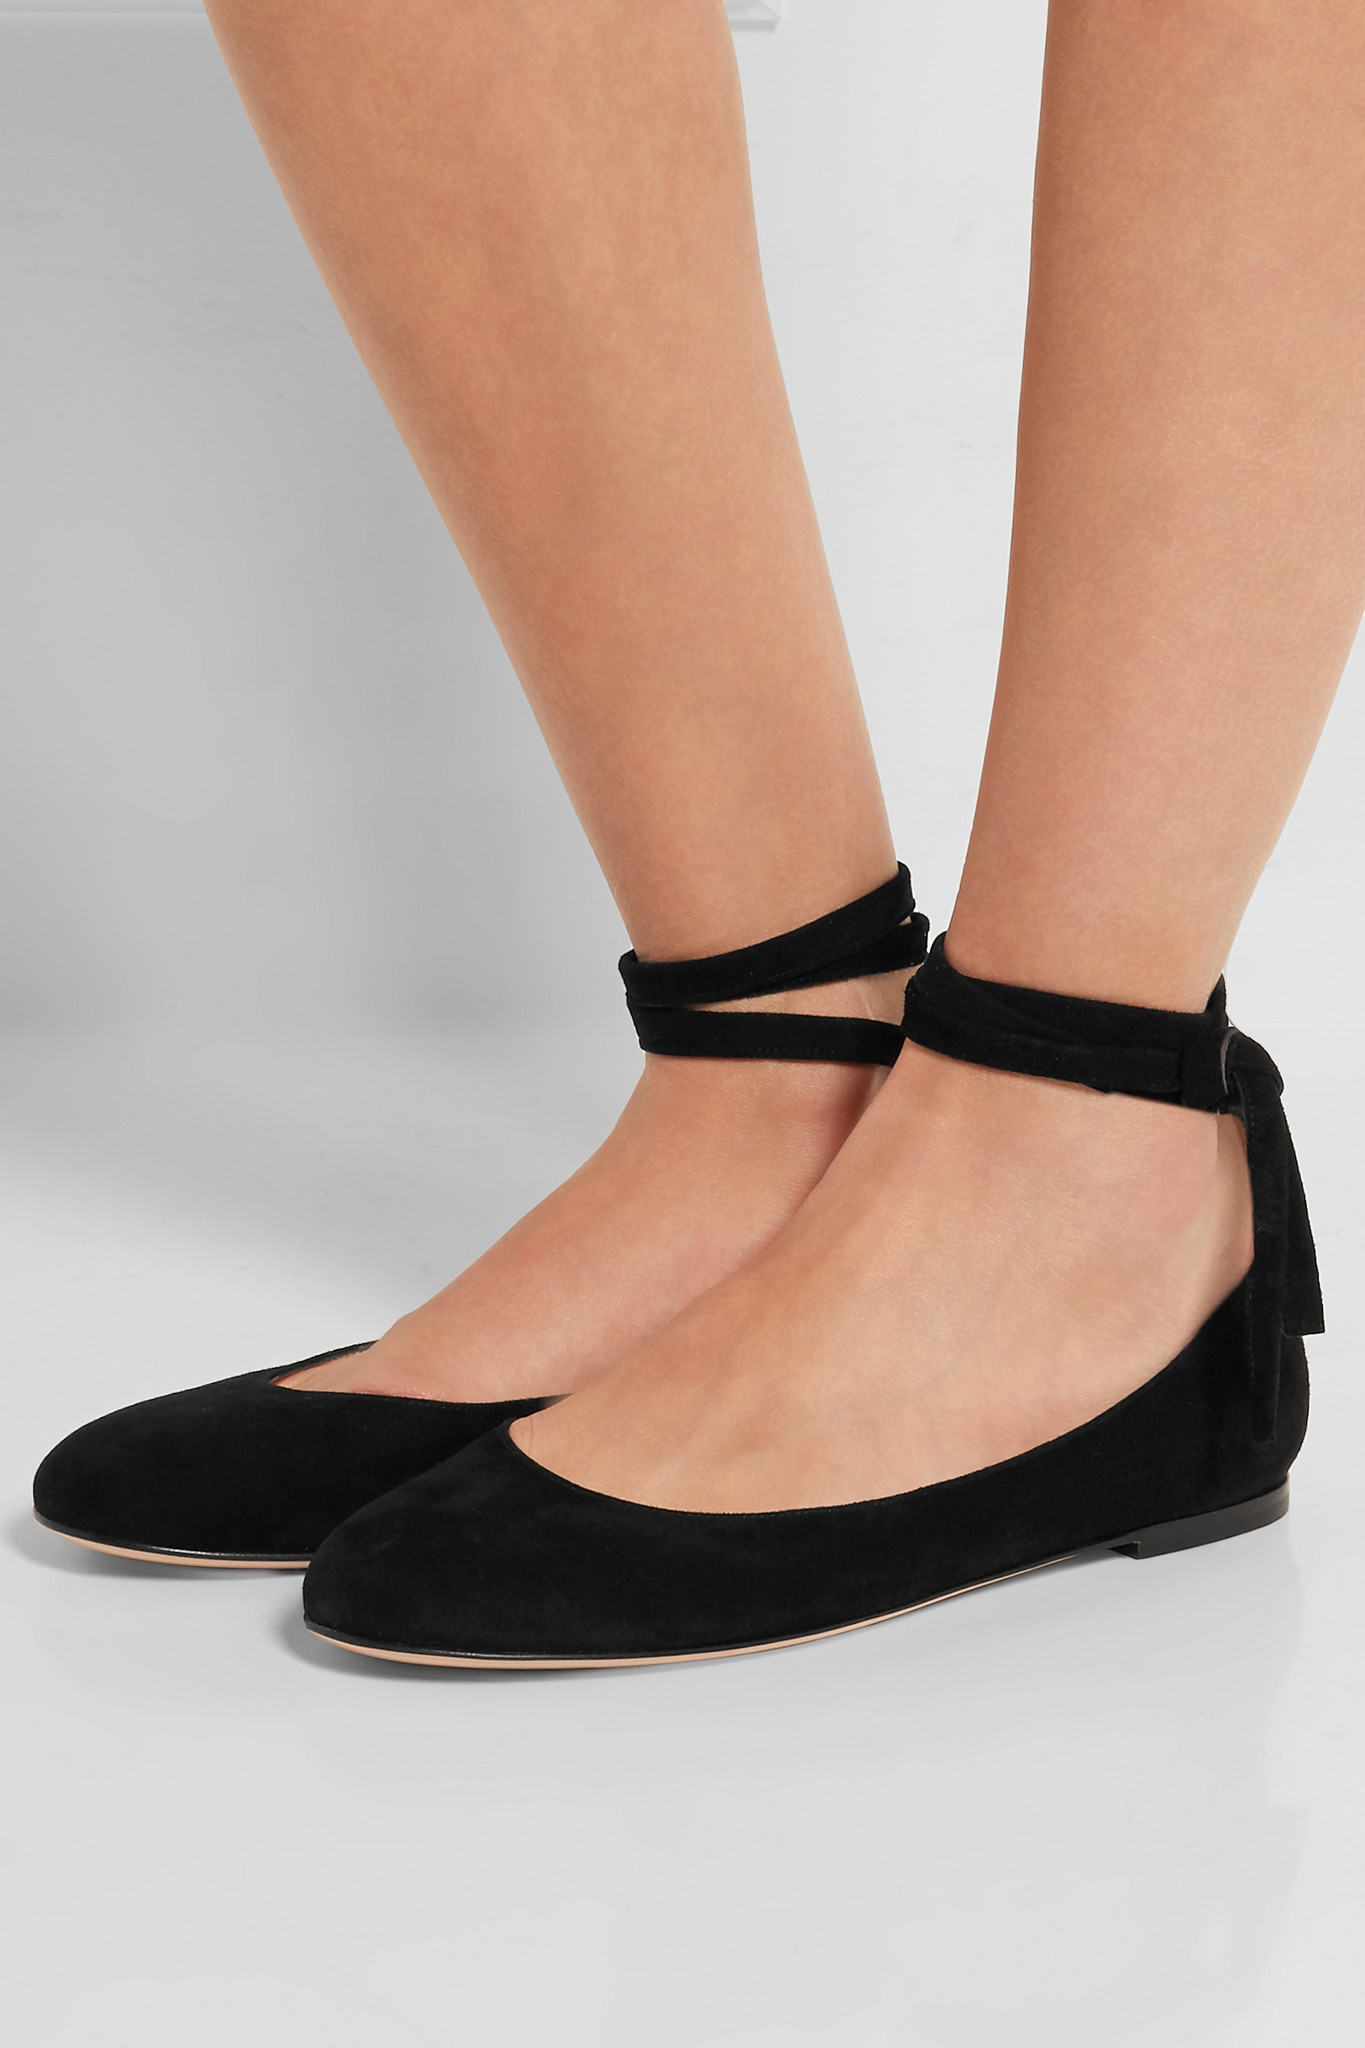 d7fd79f00760 Lyst - Gianvito Rossi Suede Ballet Flats in Black